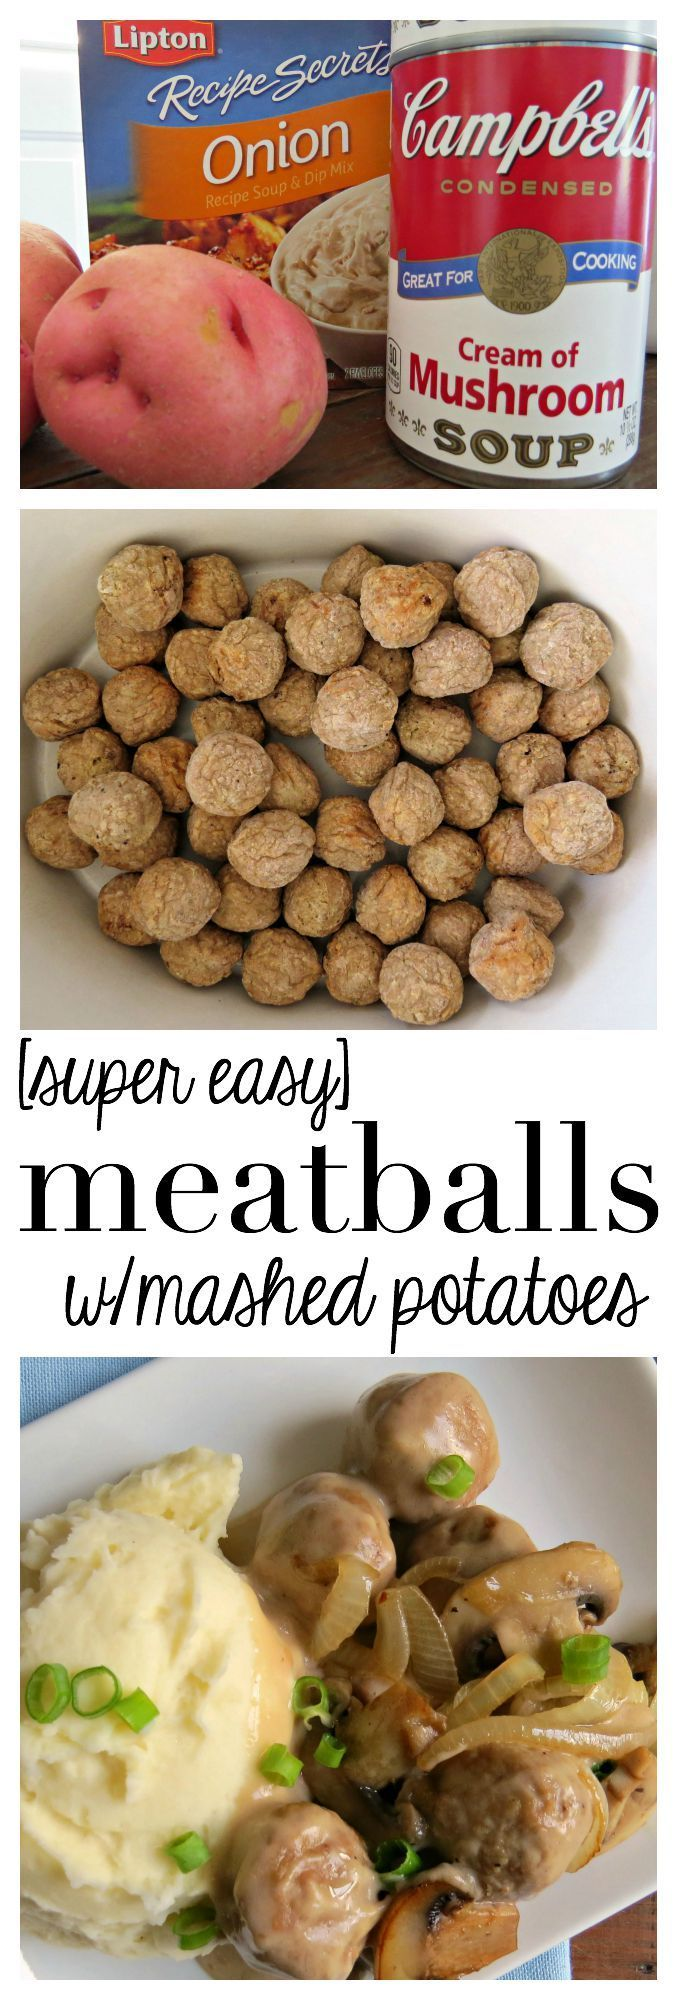 Super Easy Meatballs with Mashed Potatoes recipe